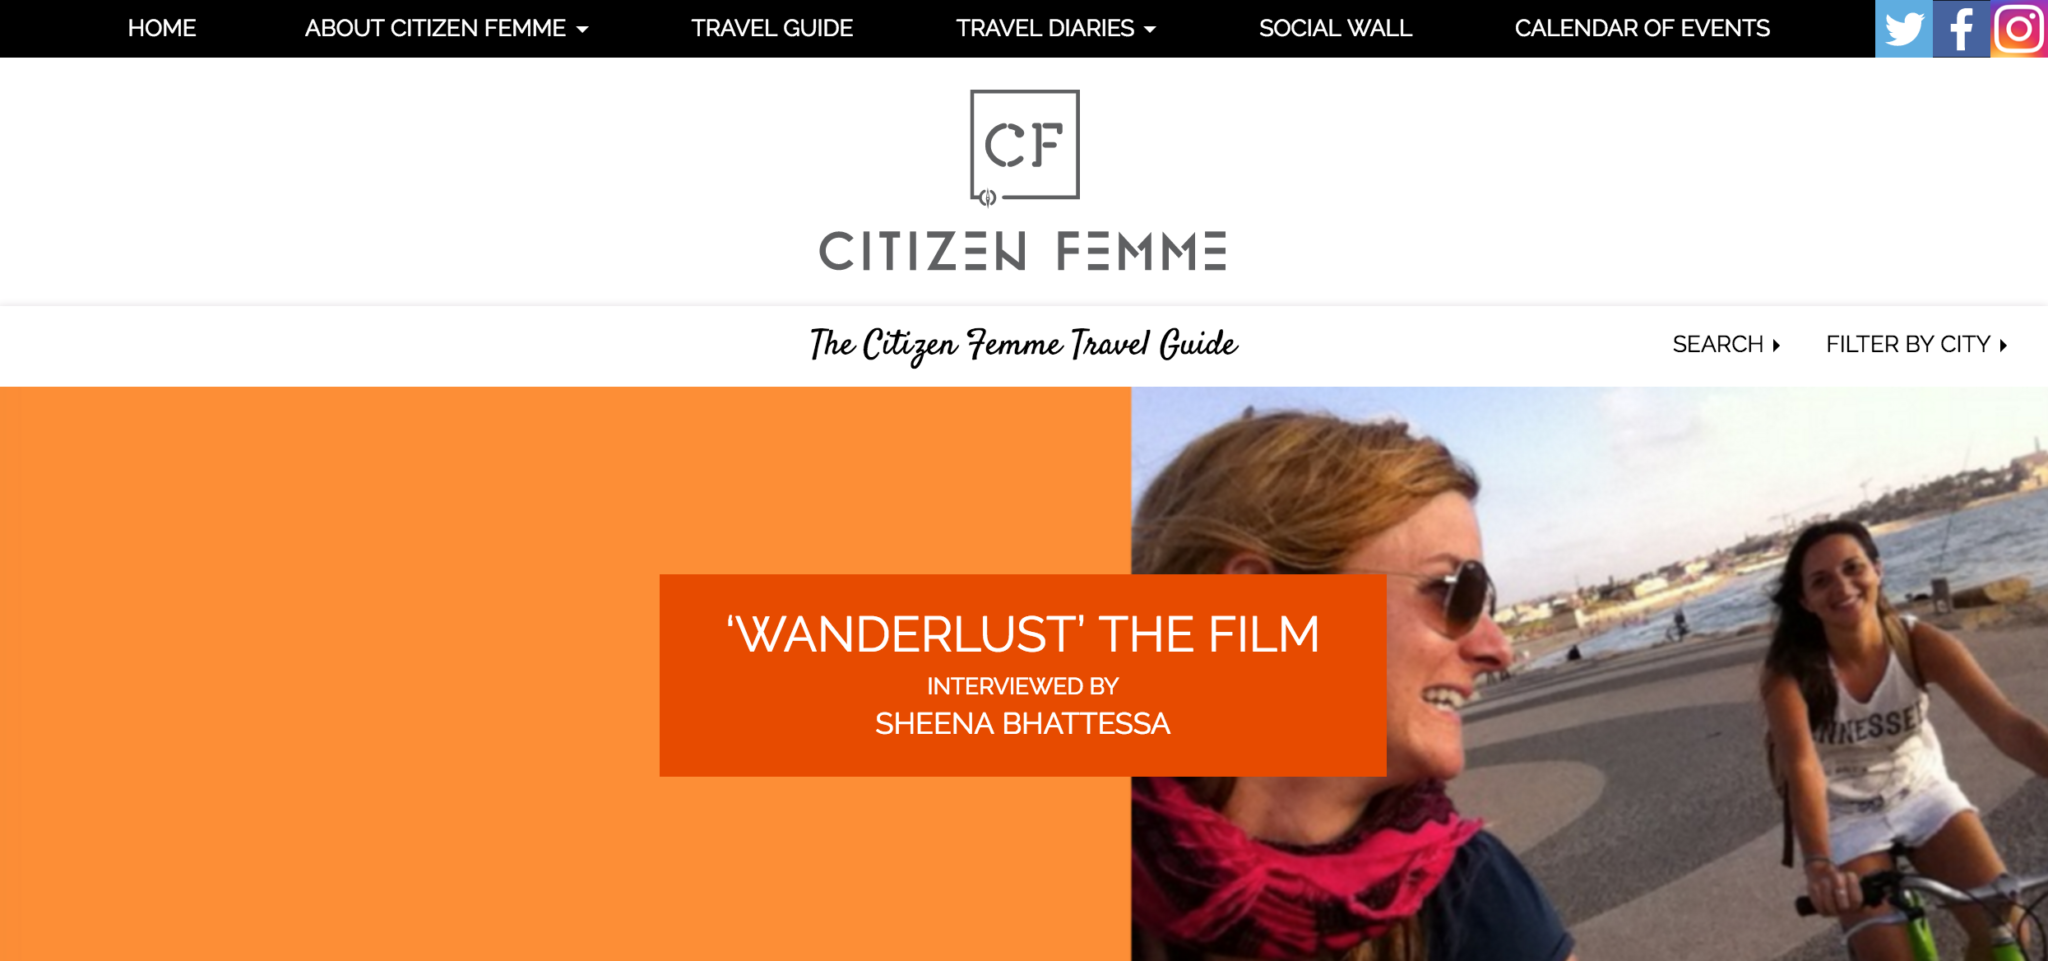 Wanderlust interviewed by CITIZEN FEMME